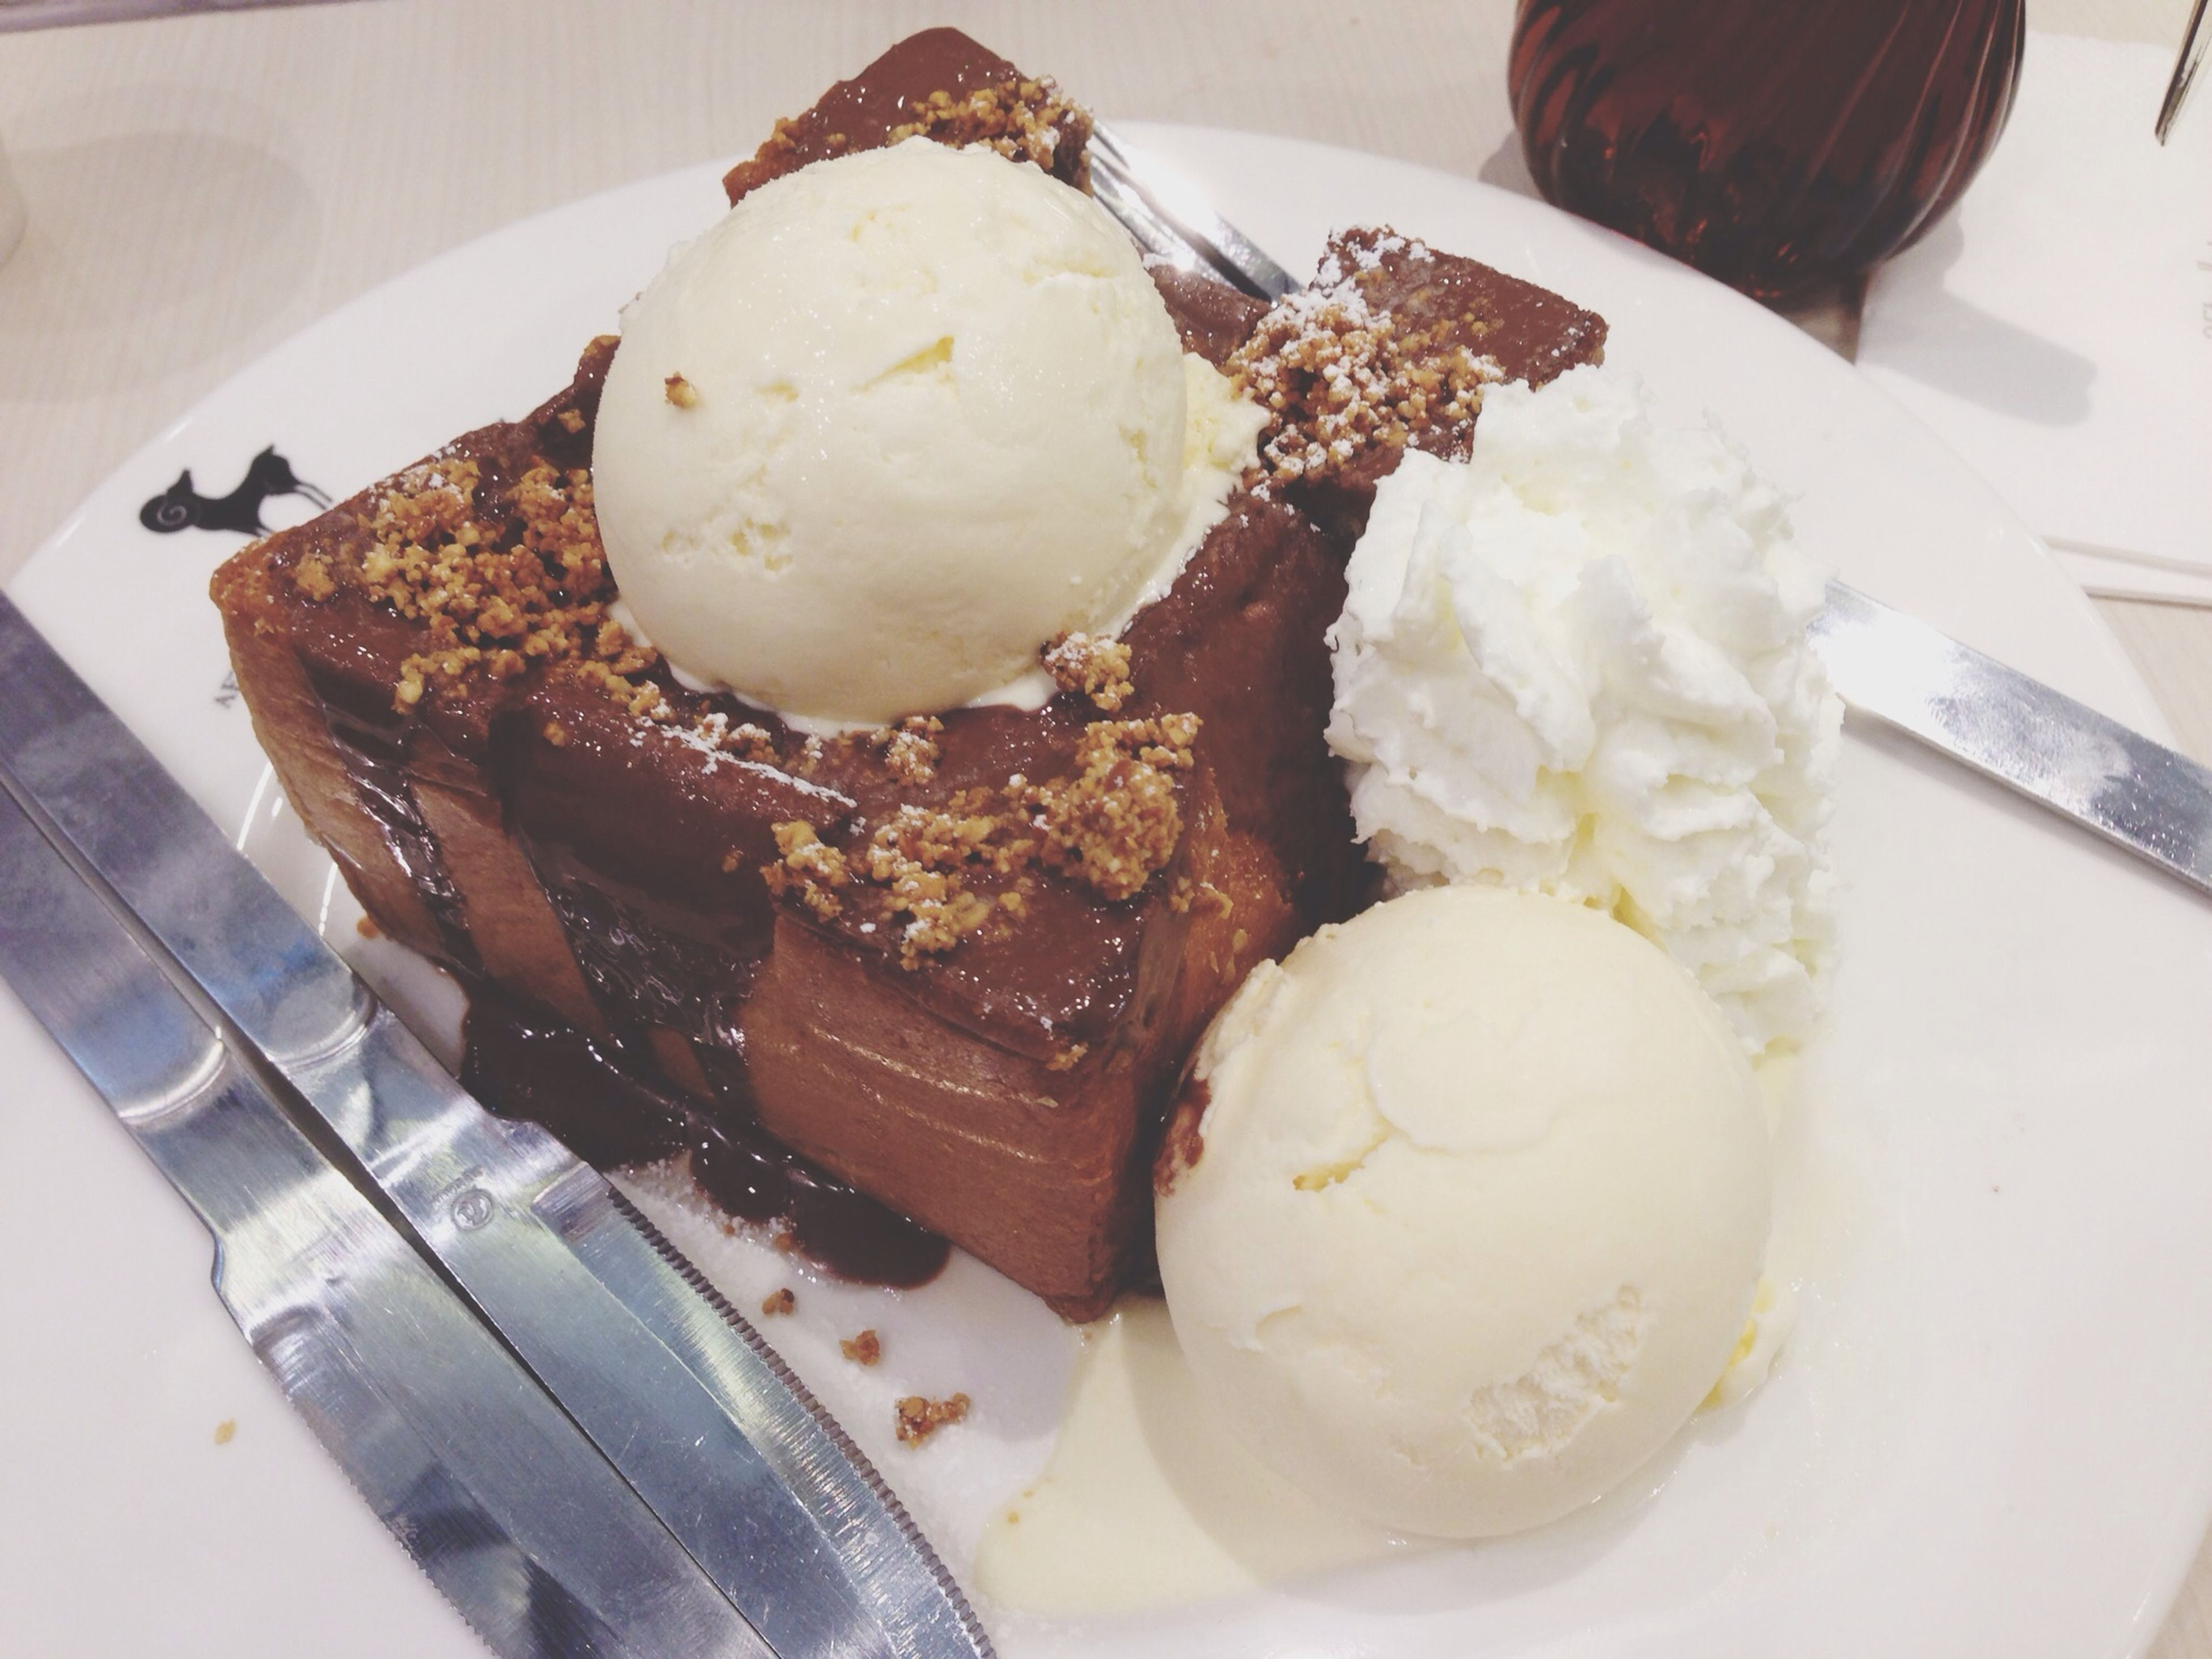 food and drink, food, indoors, freshness, sweet food, ready-to-eat, dessert, indulgence, still life, plate, unhealthy eating, cake, temptation, table, chocolate, high angle view, close-up, serving size, fork, ice cream